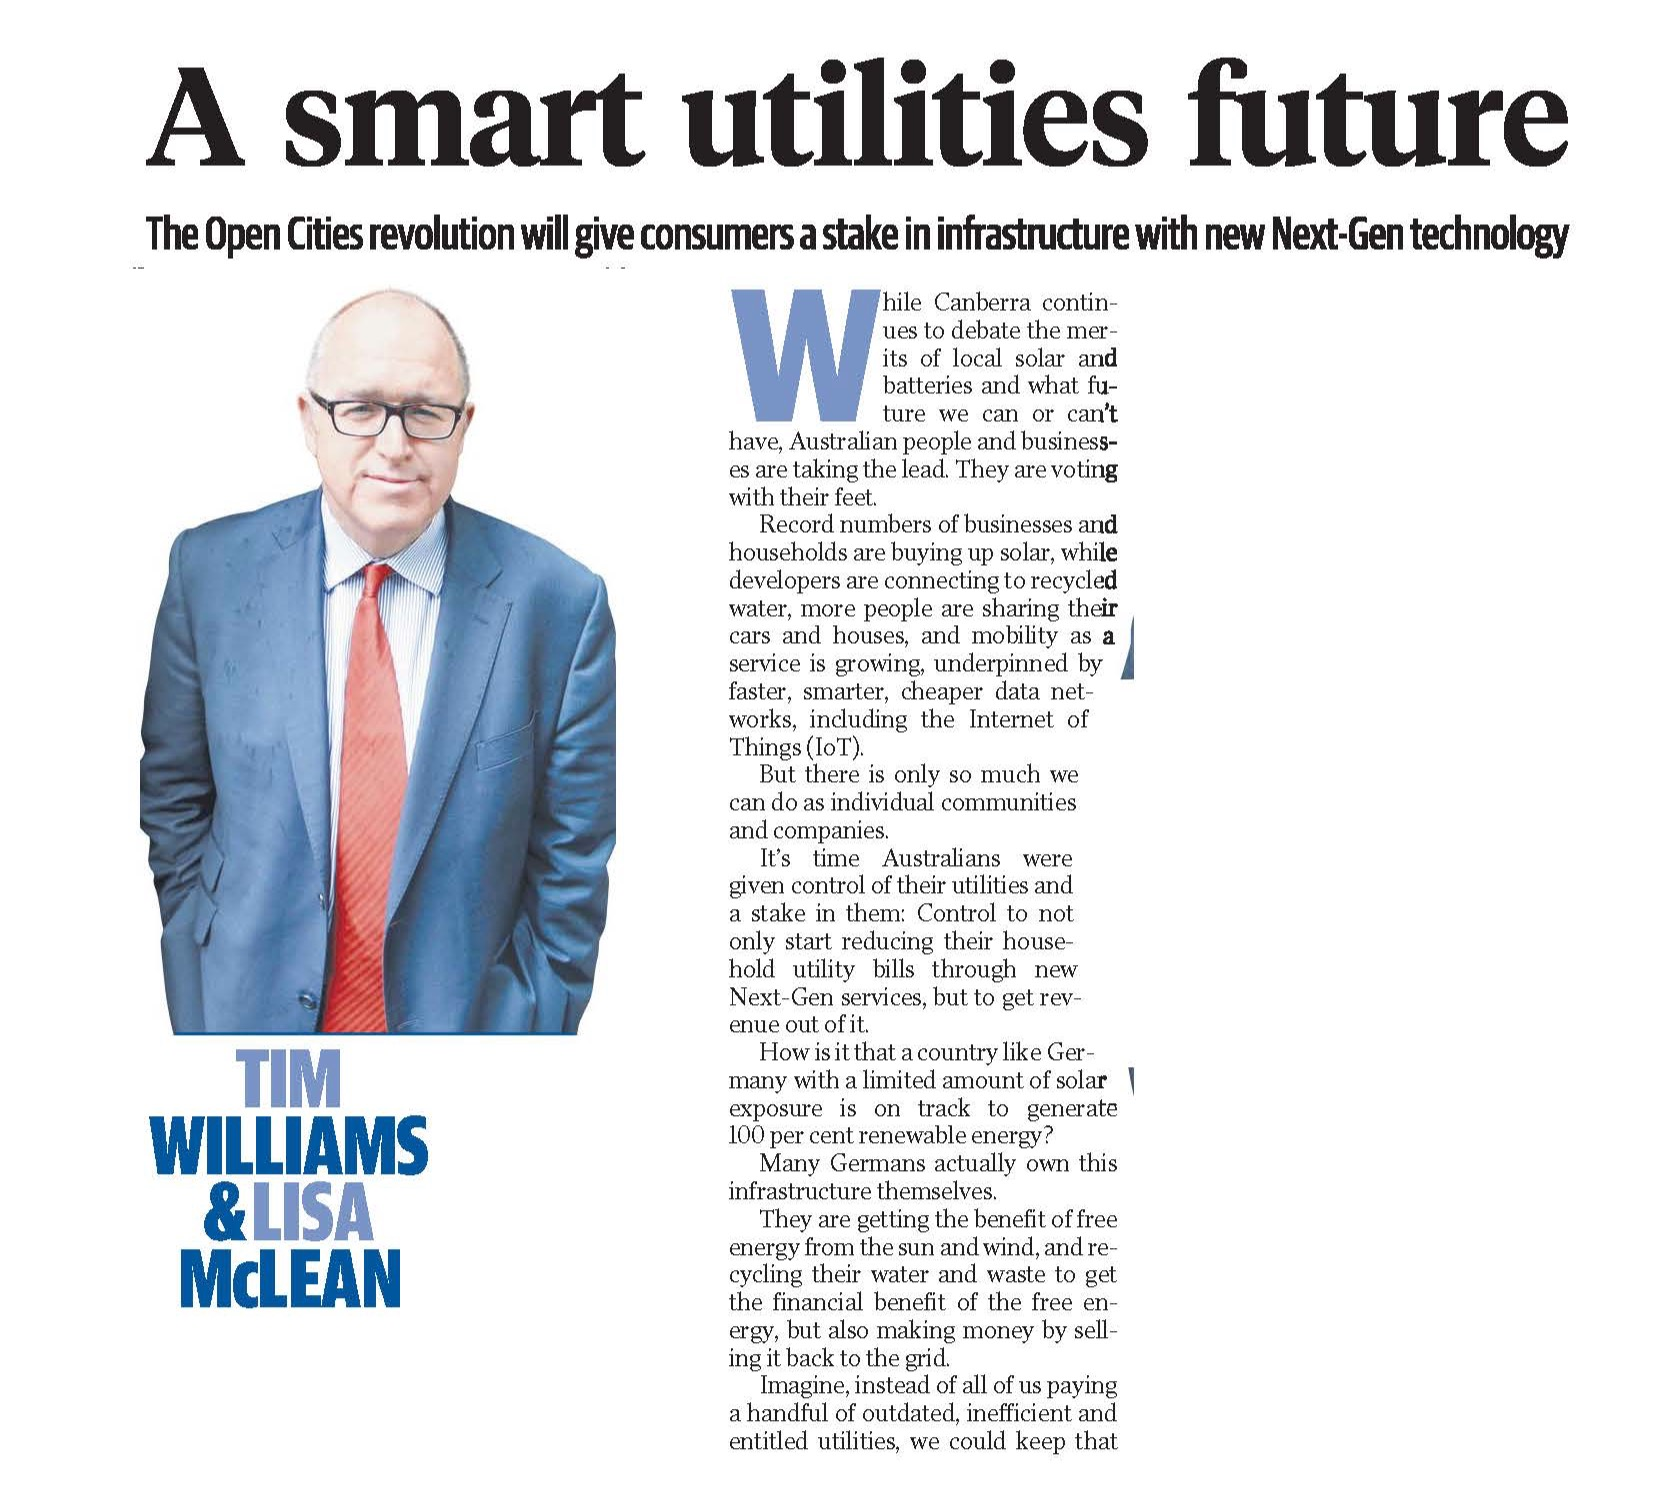 The Daily Telegraph Opinion p1/2